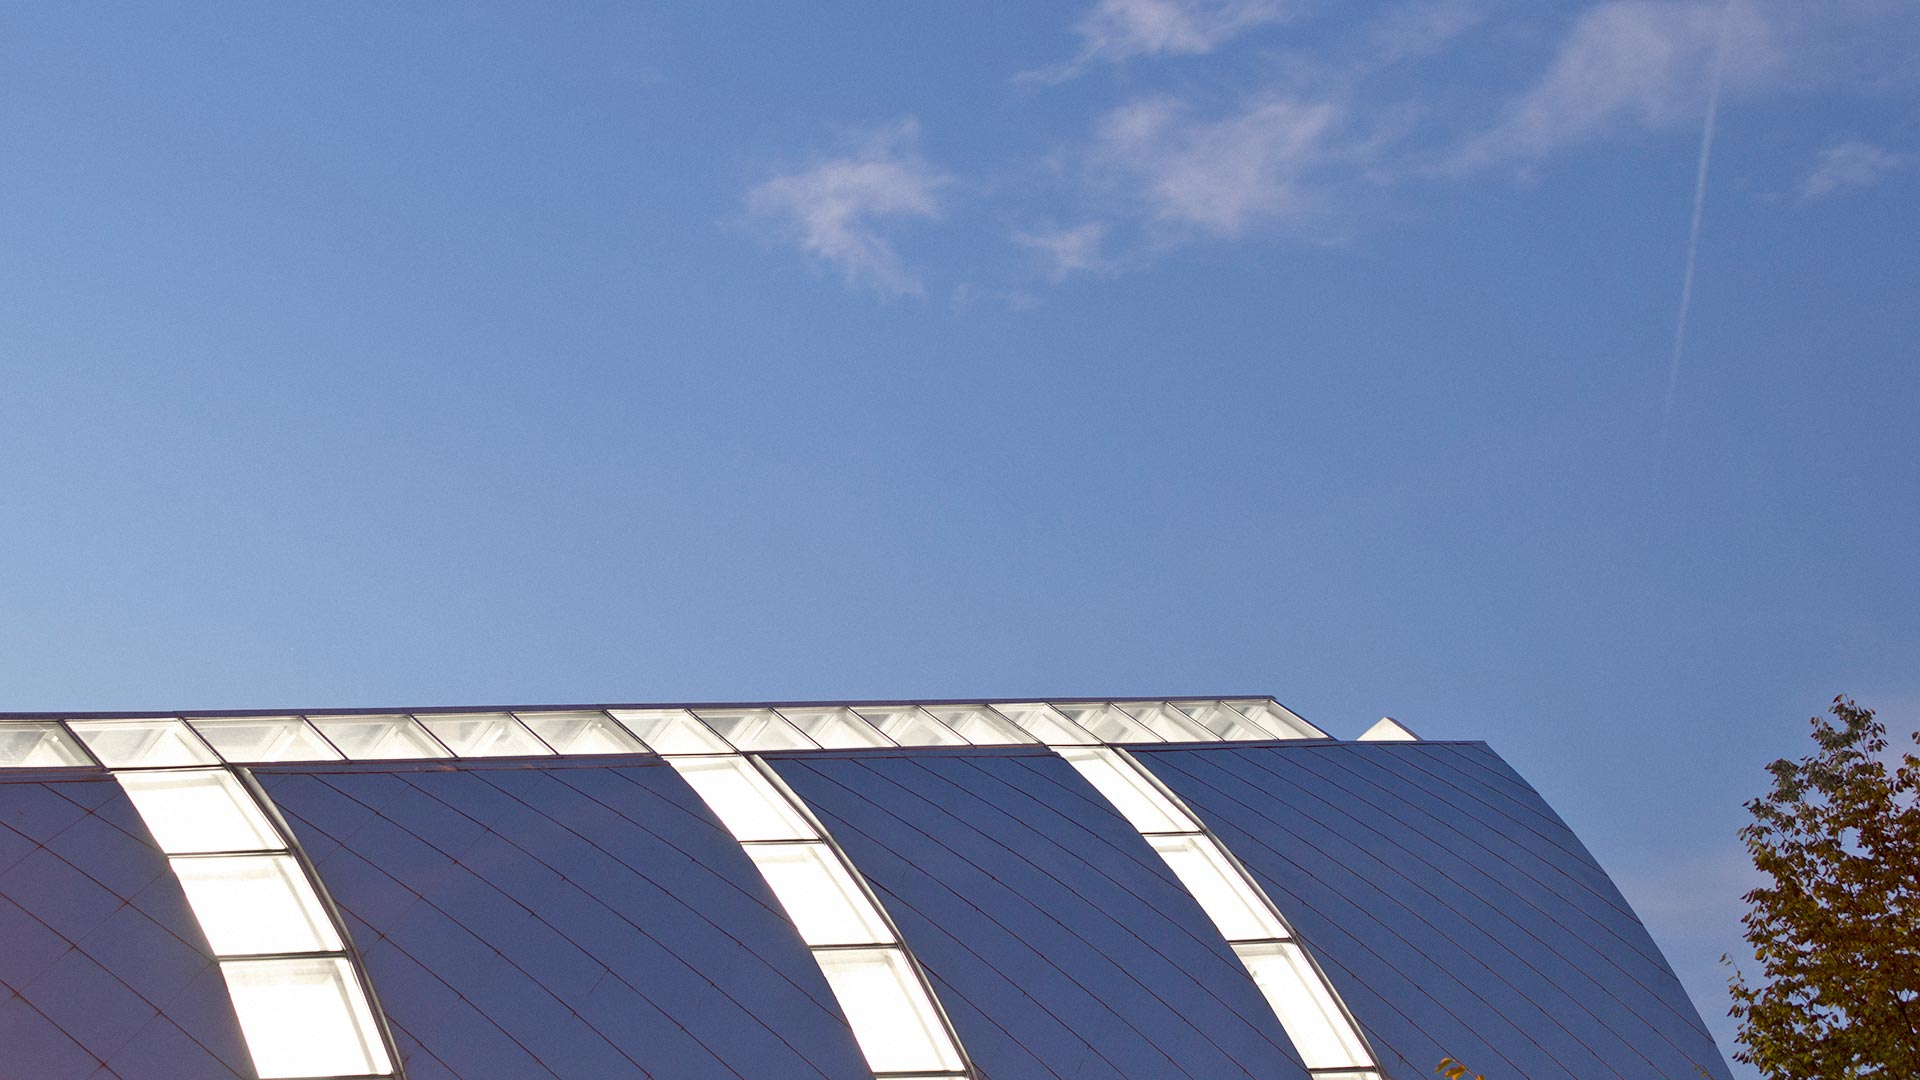 Photograph of White Chapel roof at dusk on the Rose-Hulman campus